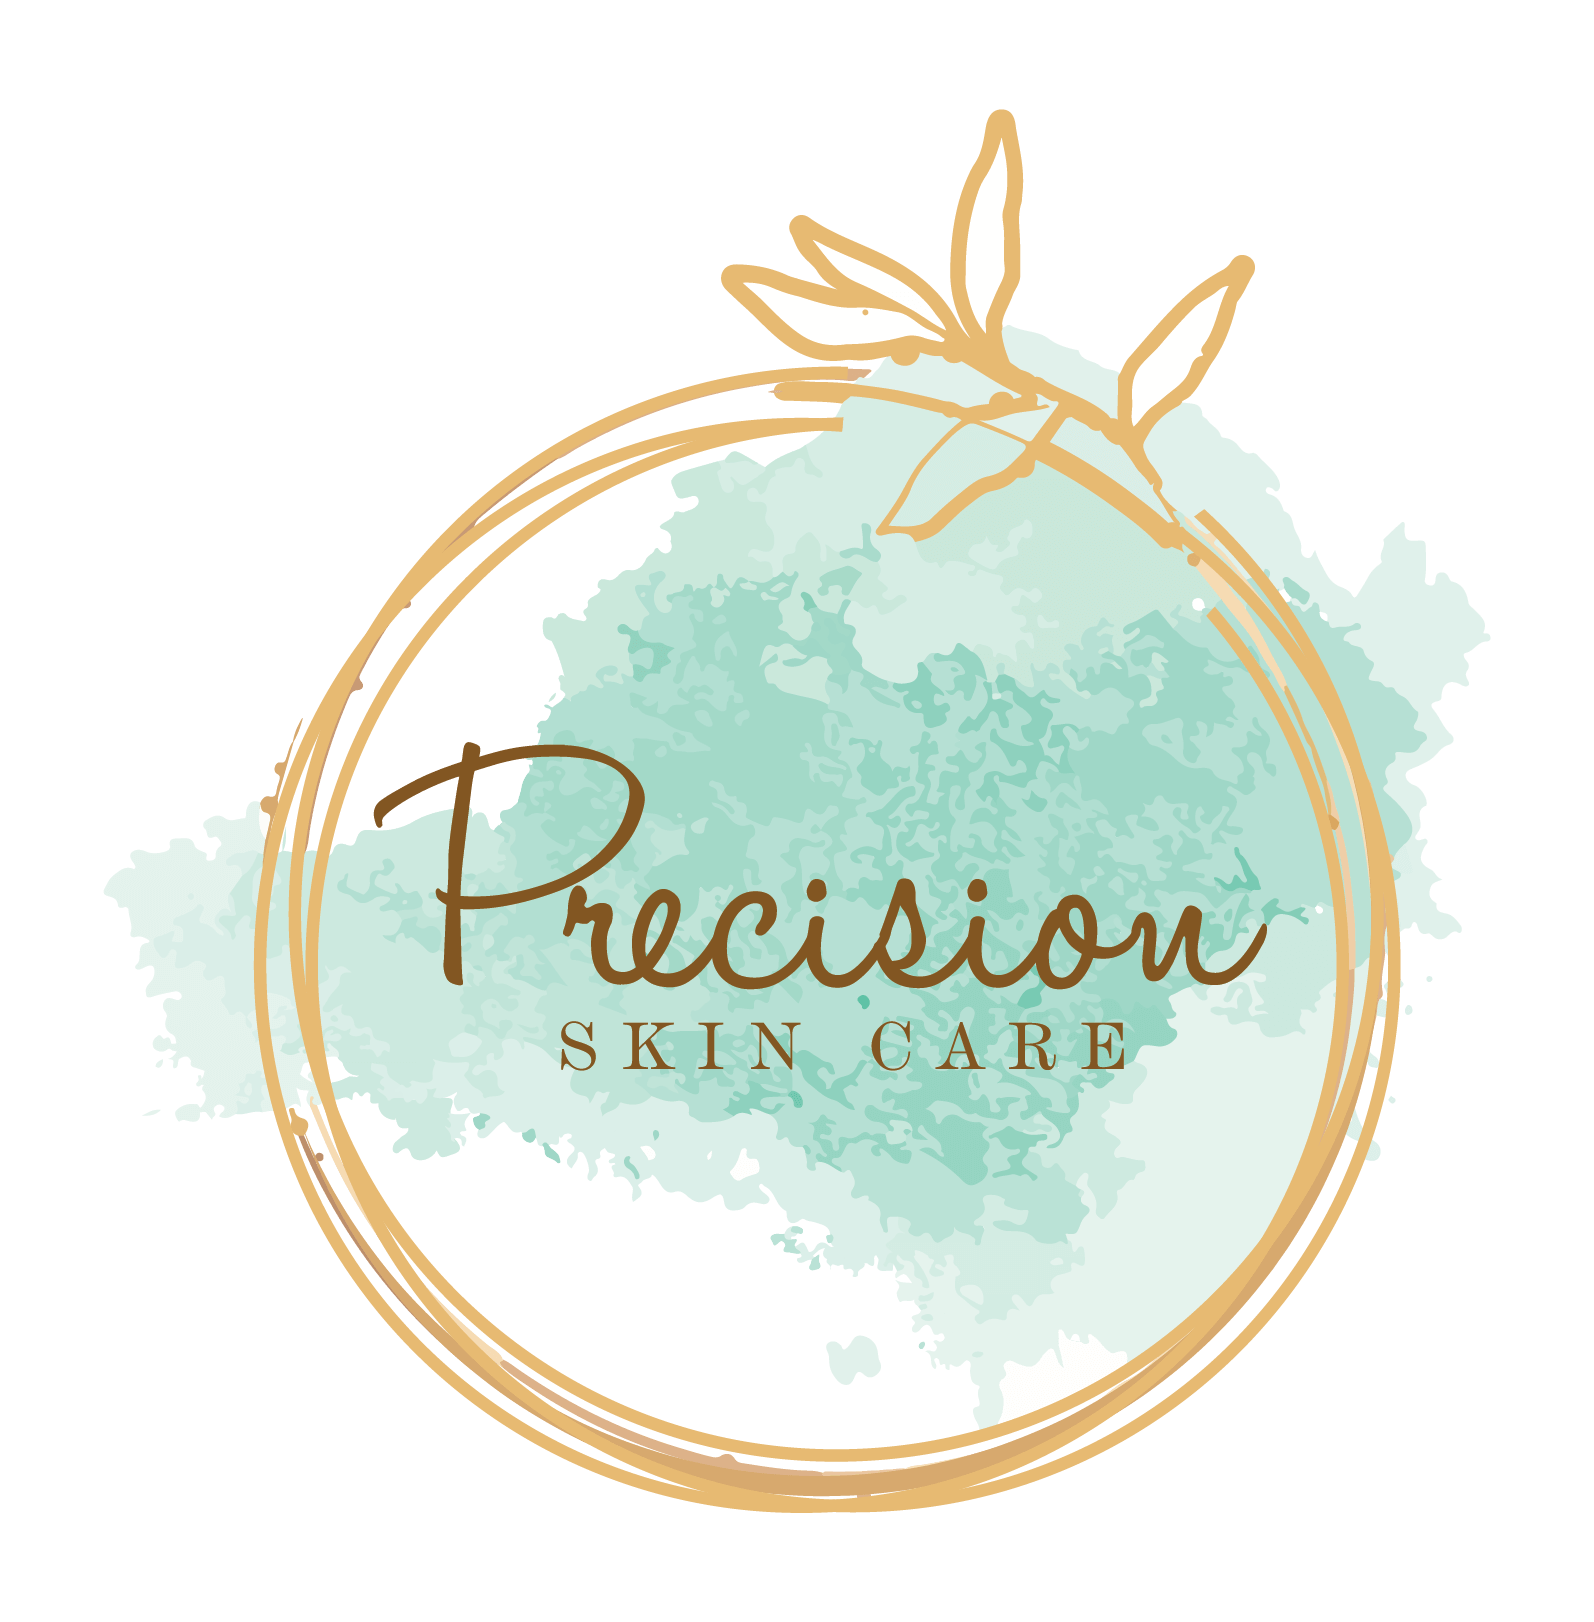 Precision Skin Care logo